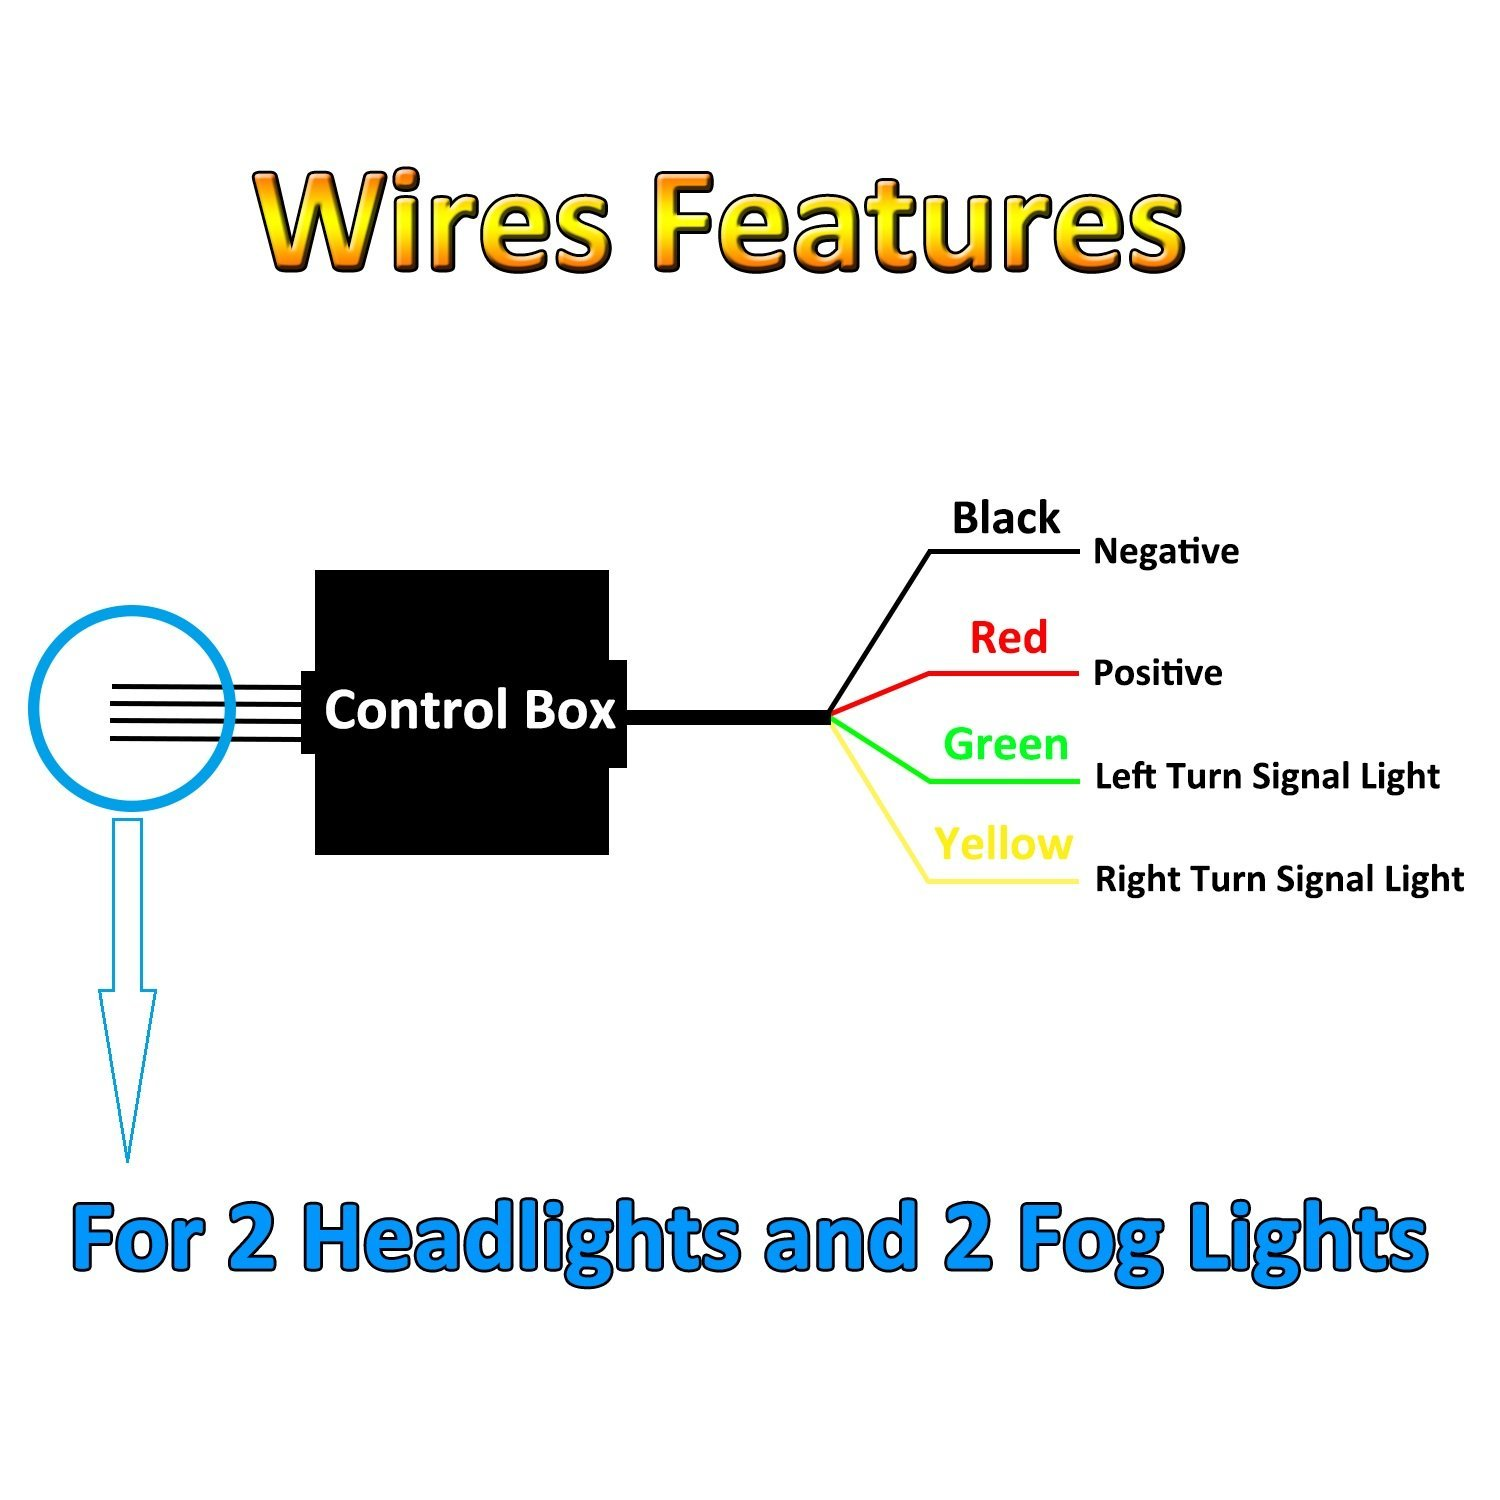 Hummer Turn Signal Wiring Electrical Diagrams 1954 Chevy Blinker Nf Nightfire 7 Inch Round Led Headlights For Jeep Wrangler Jk Tj Lj Flasher Diagram